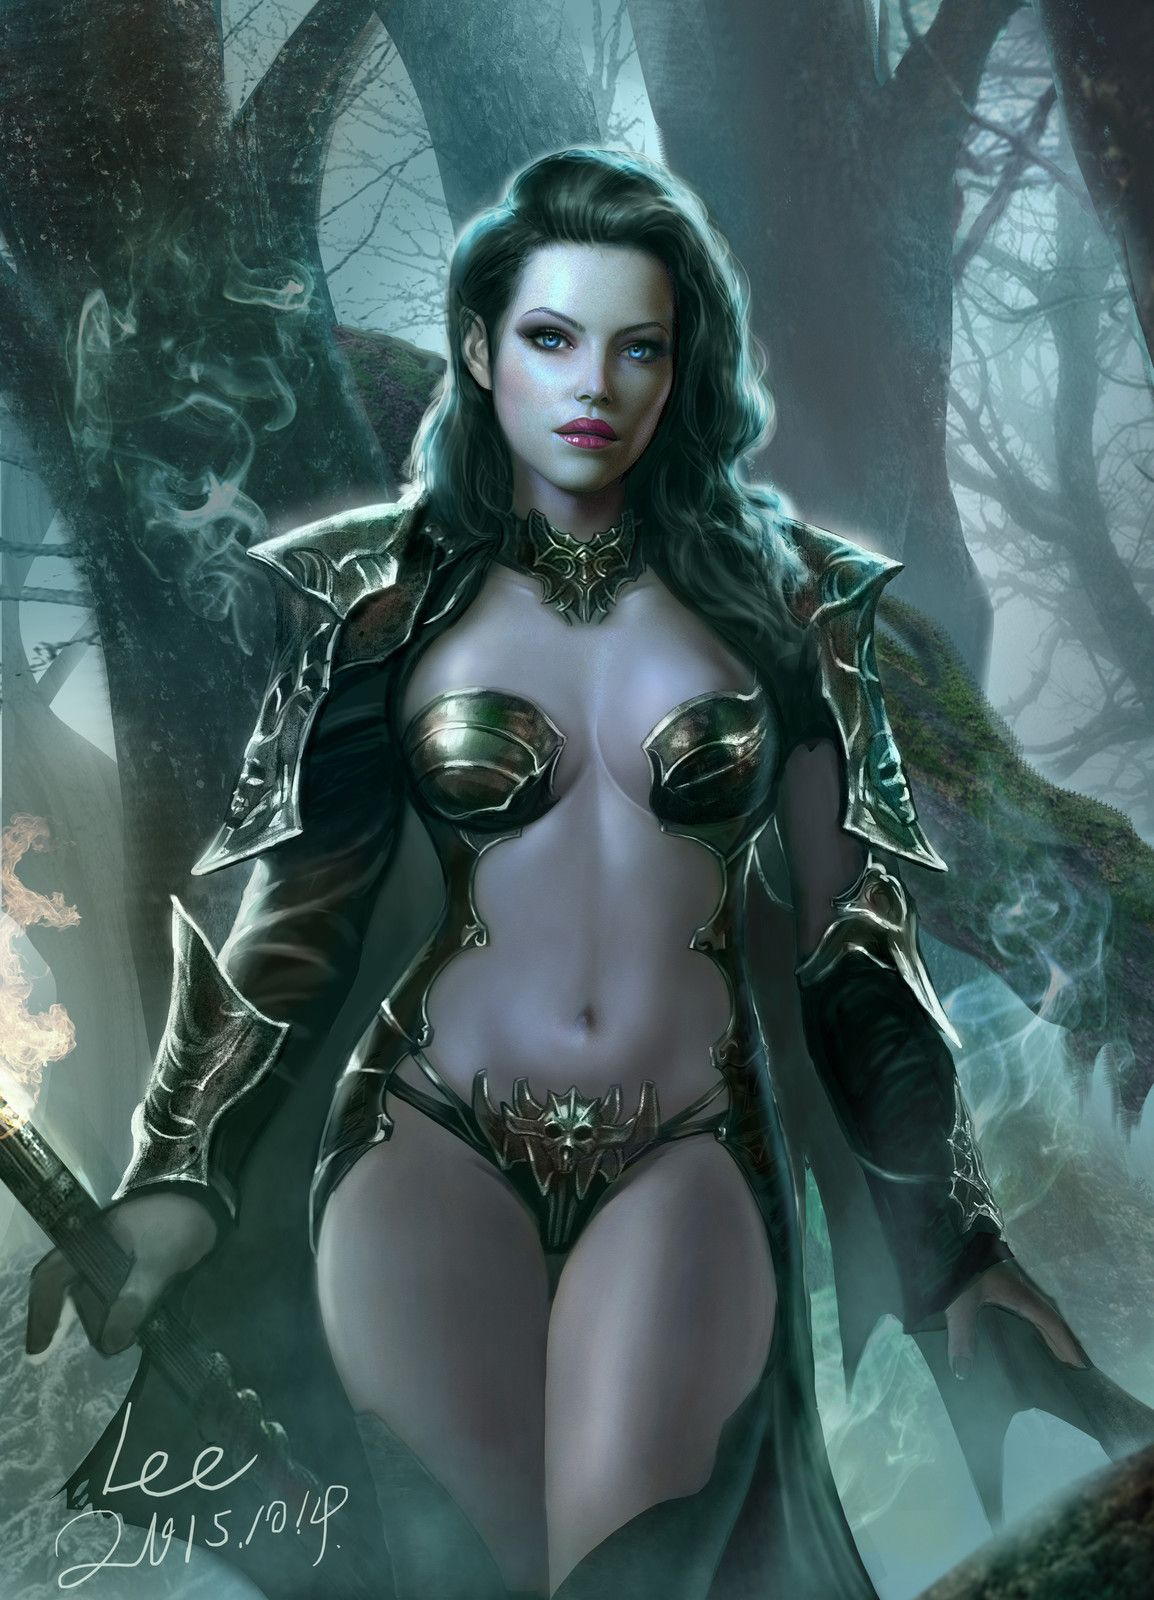 Final, sorry, Legend of cryptids dark queen guinevere idea